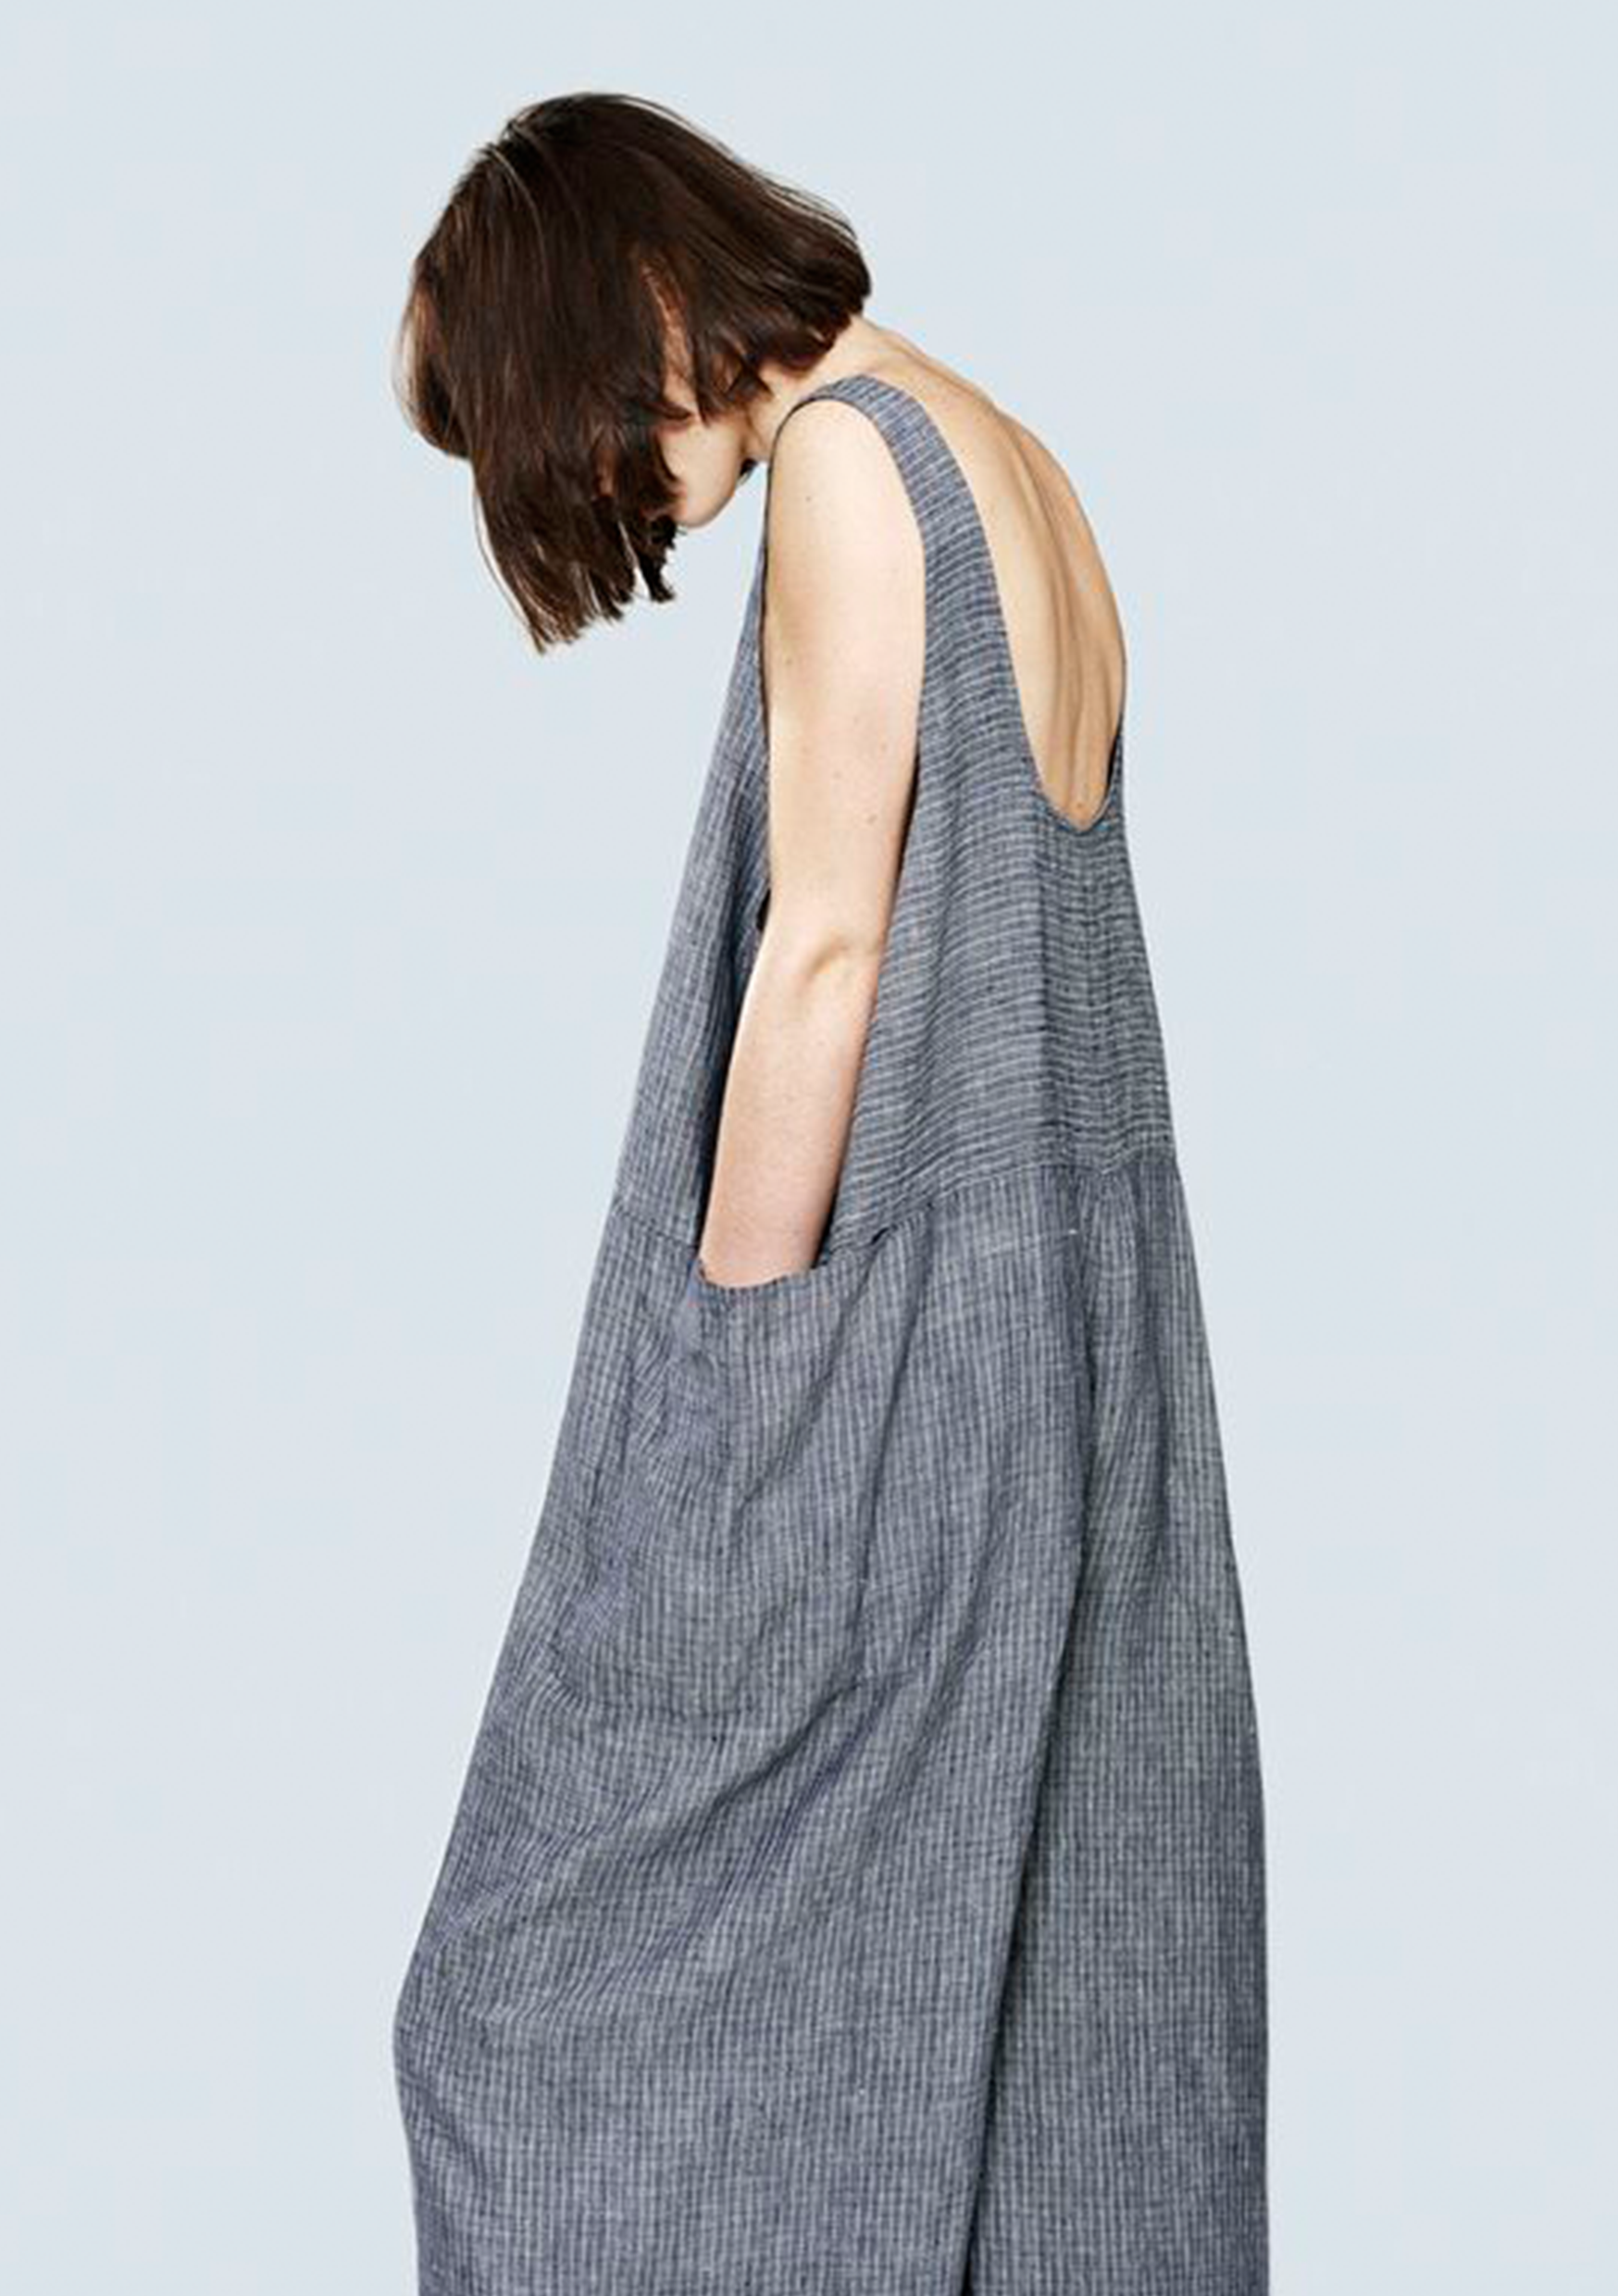 Study NY company who is produce organic clothes from hemp, organic cotton, alpaca fur is used legal sources.Read more: http://uptostyle.hu/fenntarthato-divat-kepviseloi/